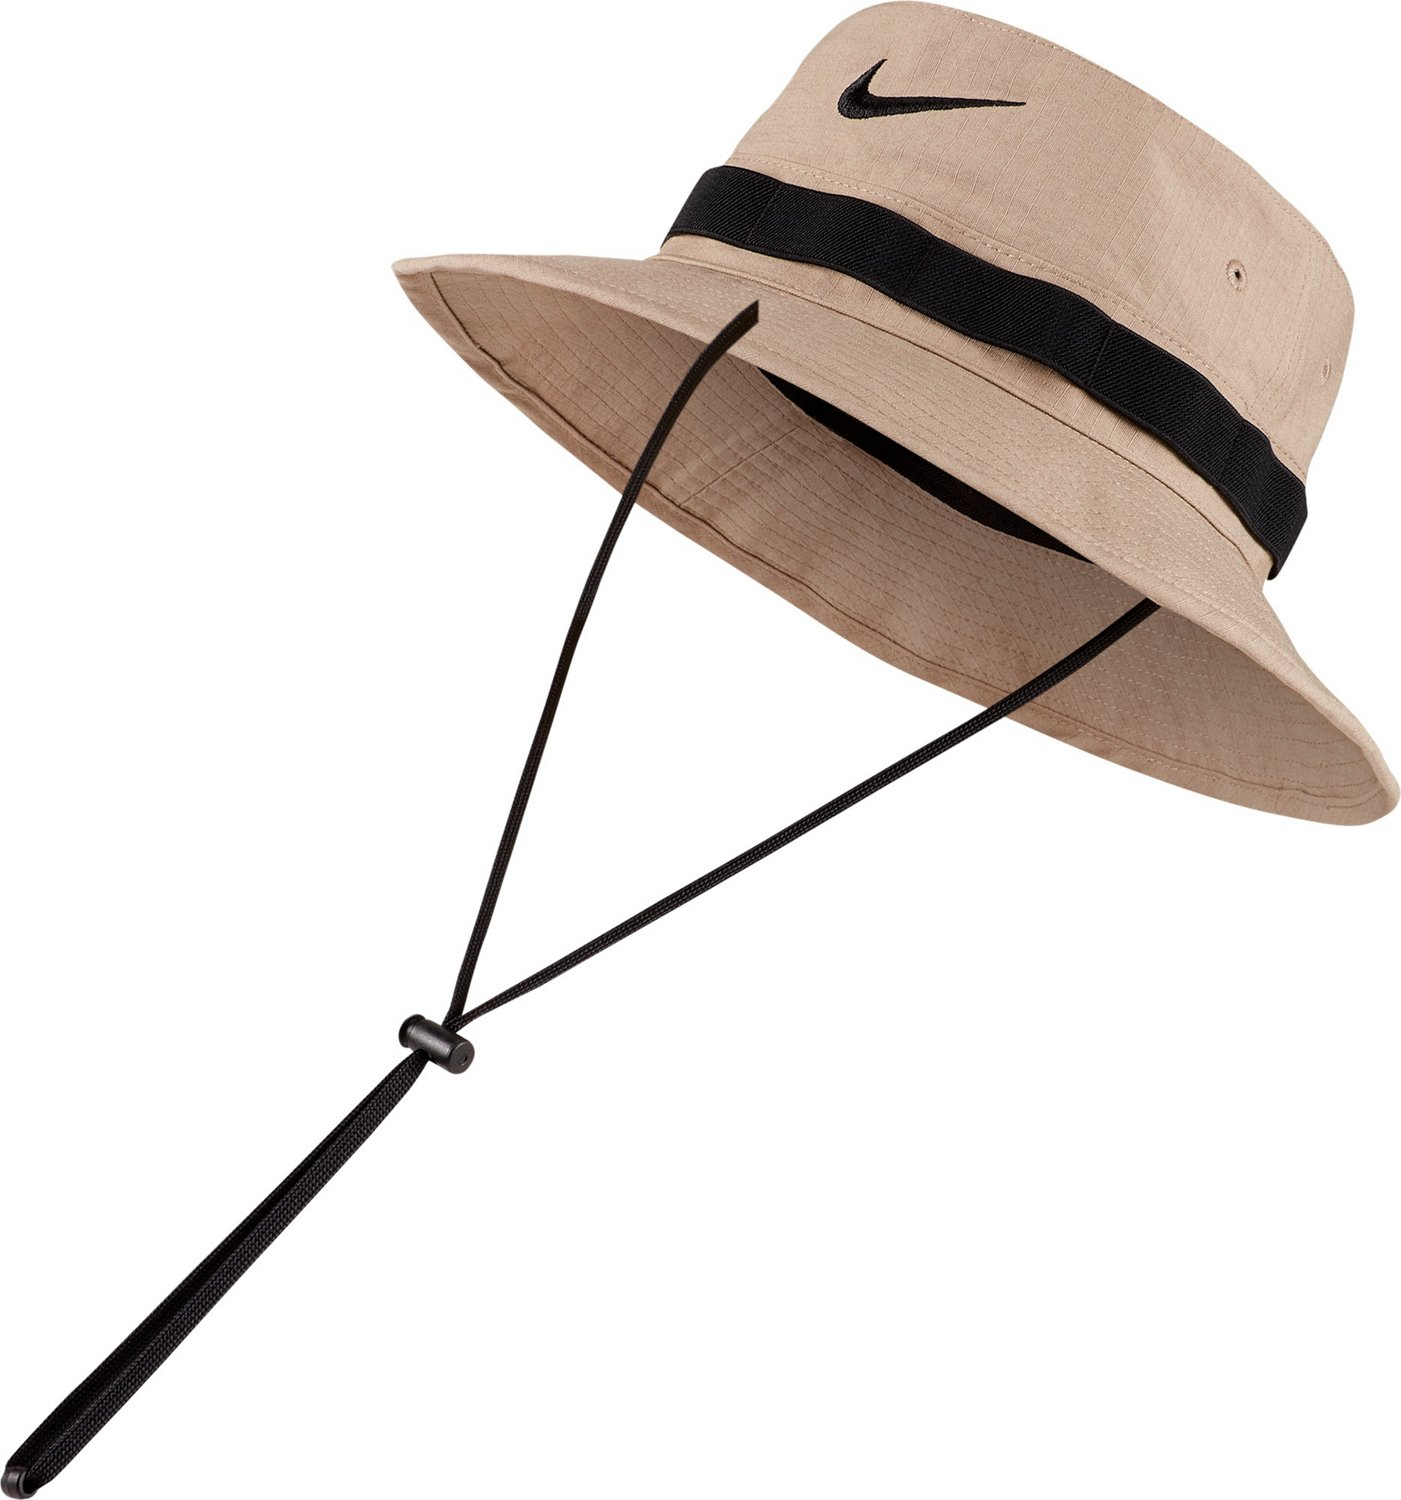 568fc1a6 Display product reviews for Nike Men's Dry Sideline Bucket Hat